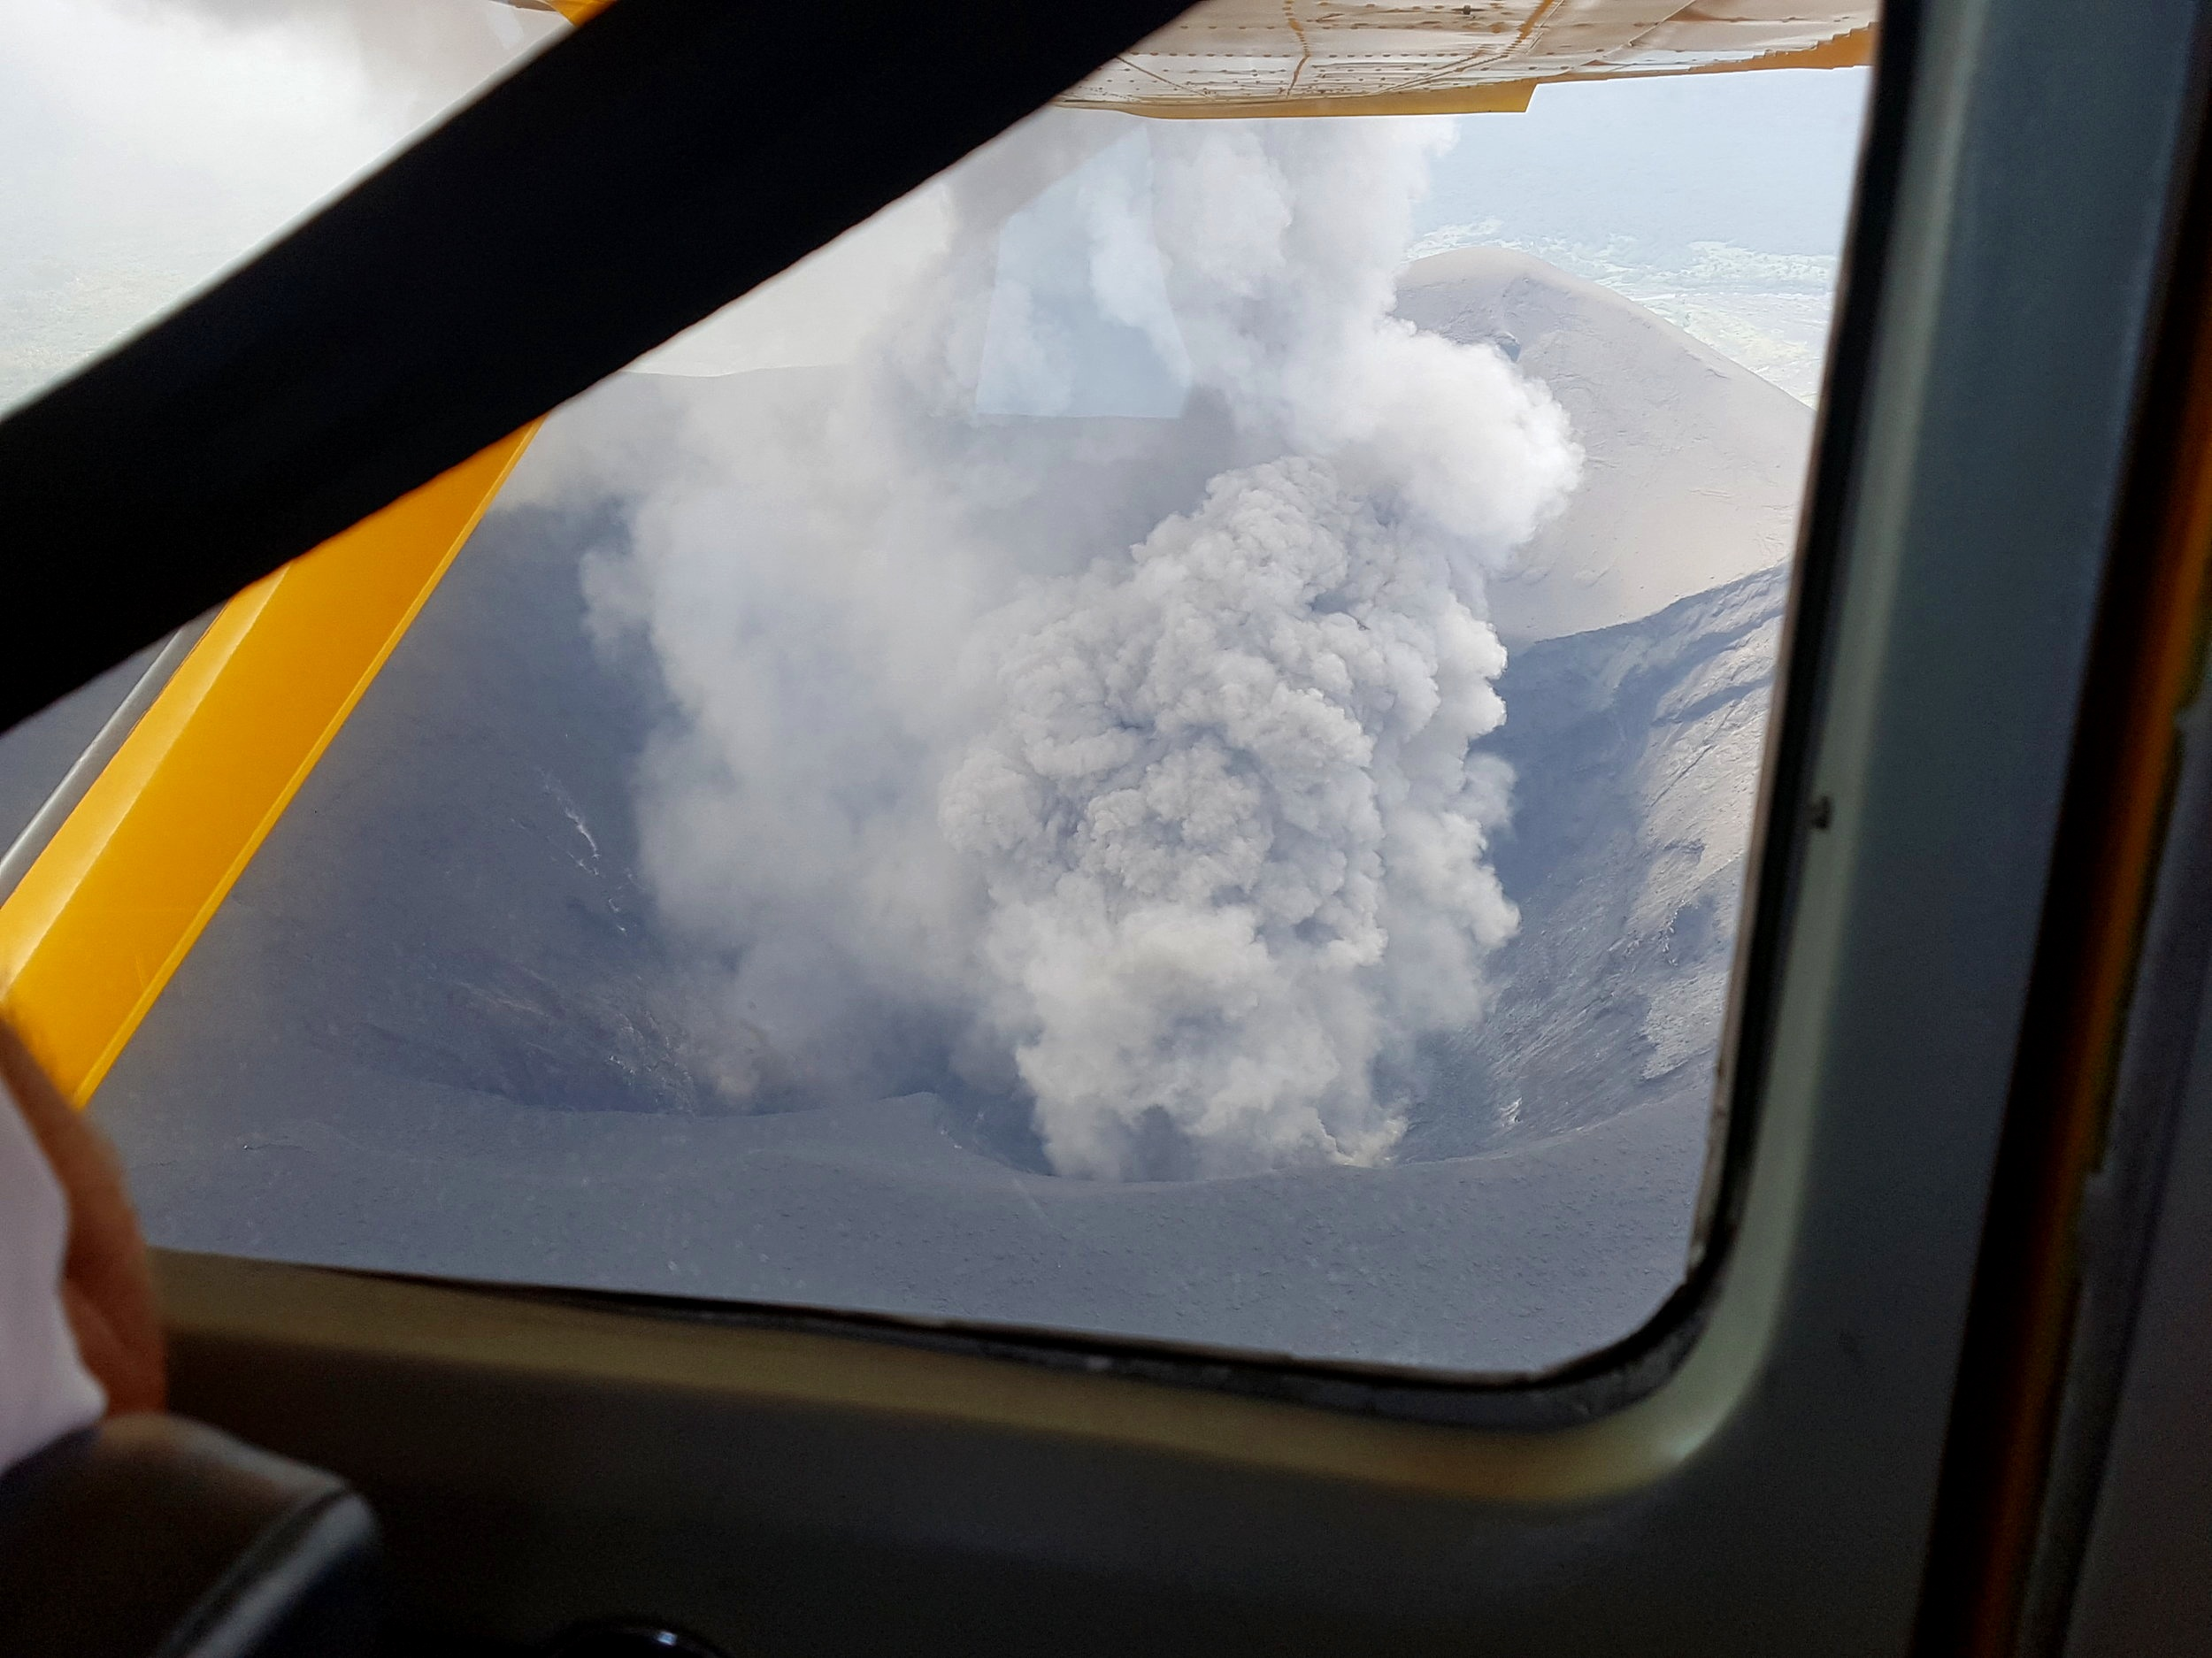 I'm pretty sure all flights in Europe were grounded when that volcano erupted in Iceland in 2010. Turns out flying directly over a volcano is fine in Vanuatu.